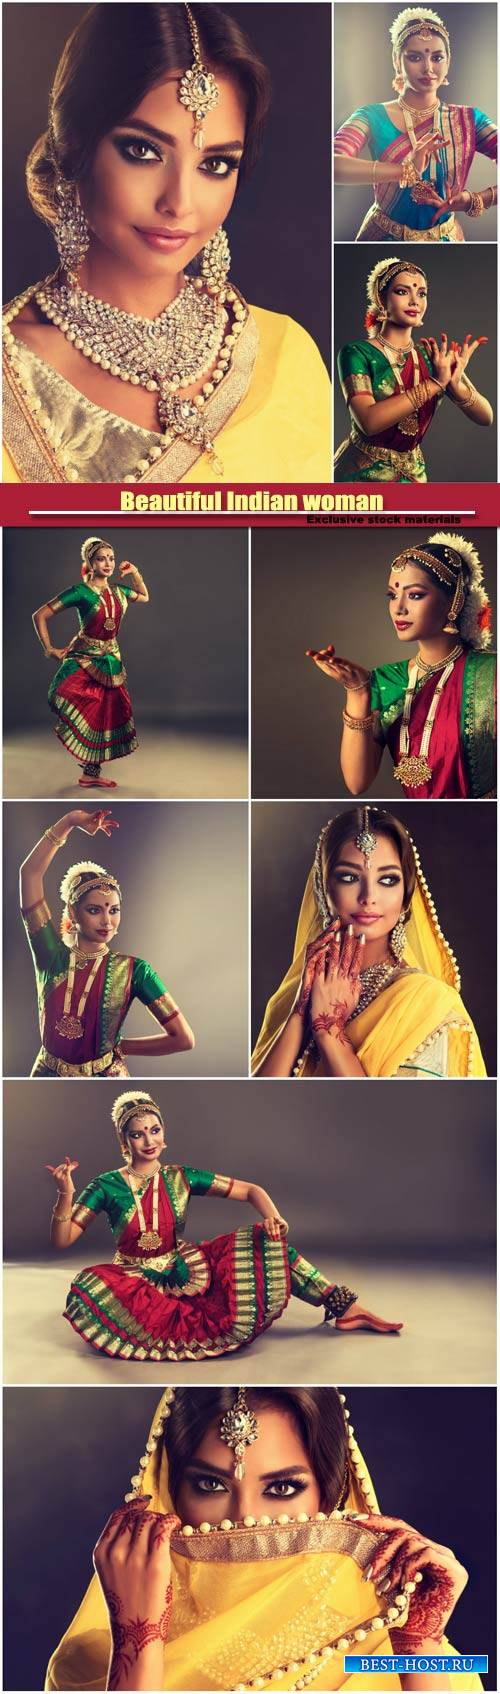 Beautiful Indian woman in traditional dress